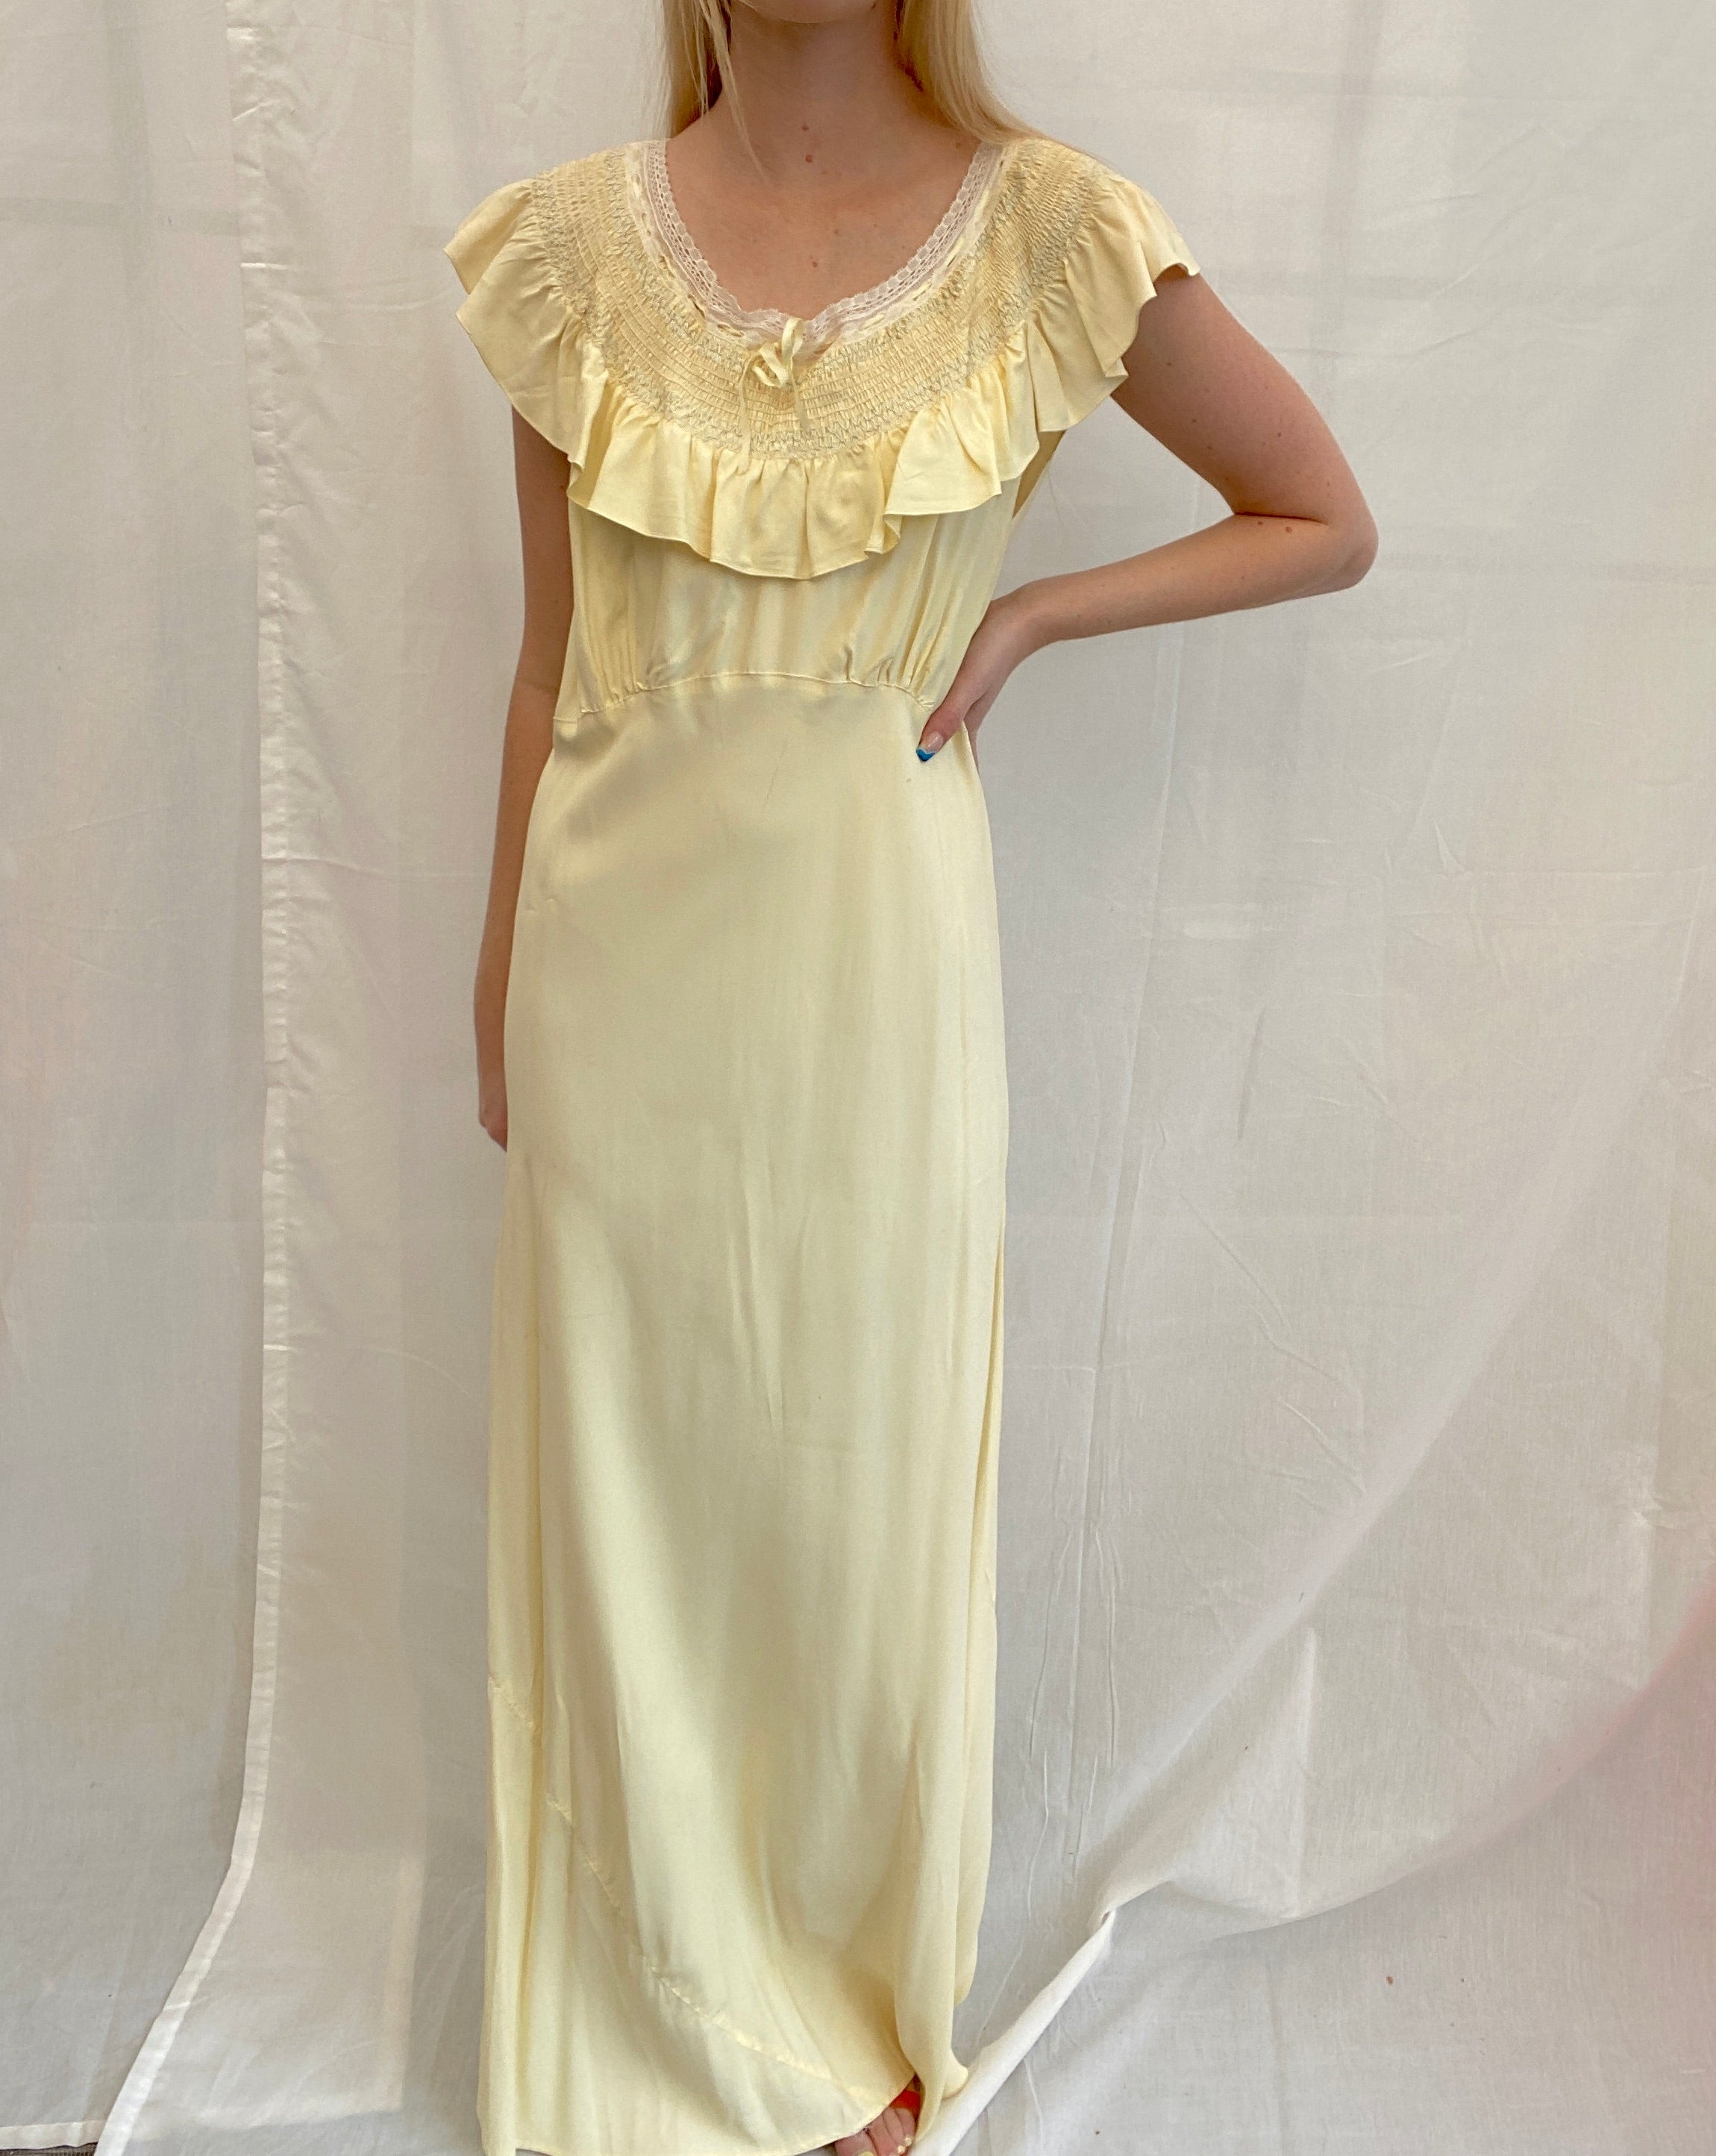 1940's Yellow Slip with Beautiful Smocked Collar